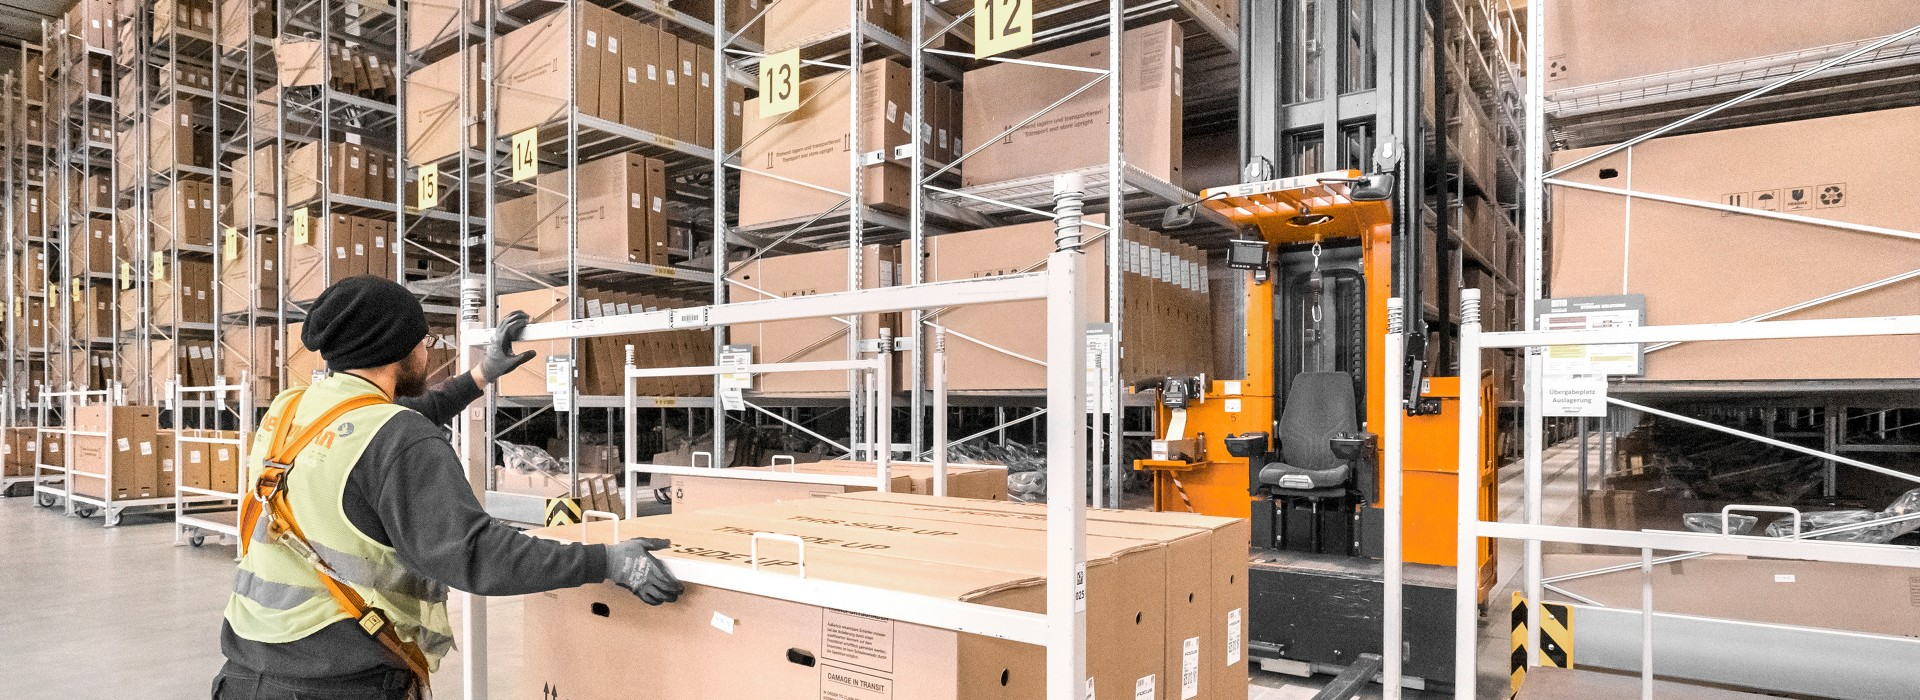 Industrie-Plus-Pakete: Logistik